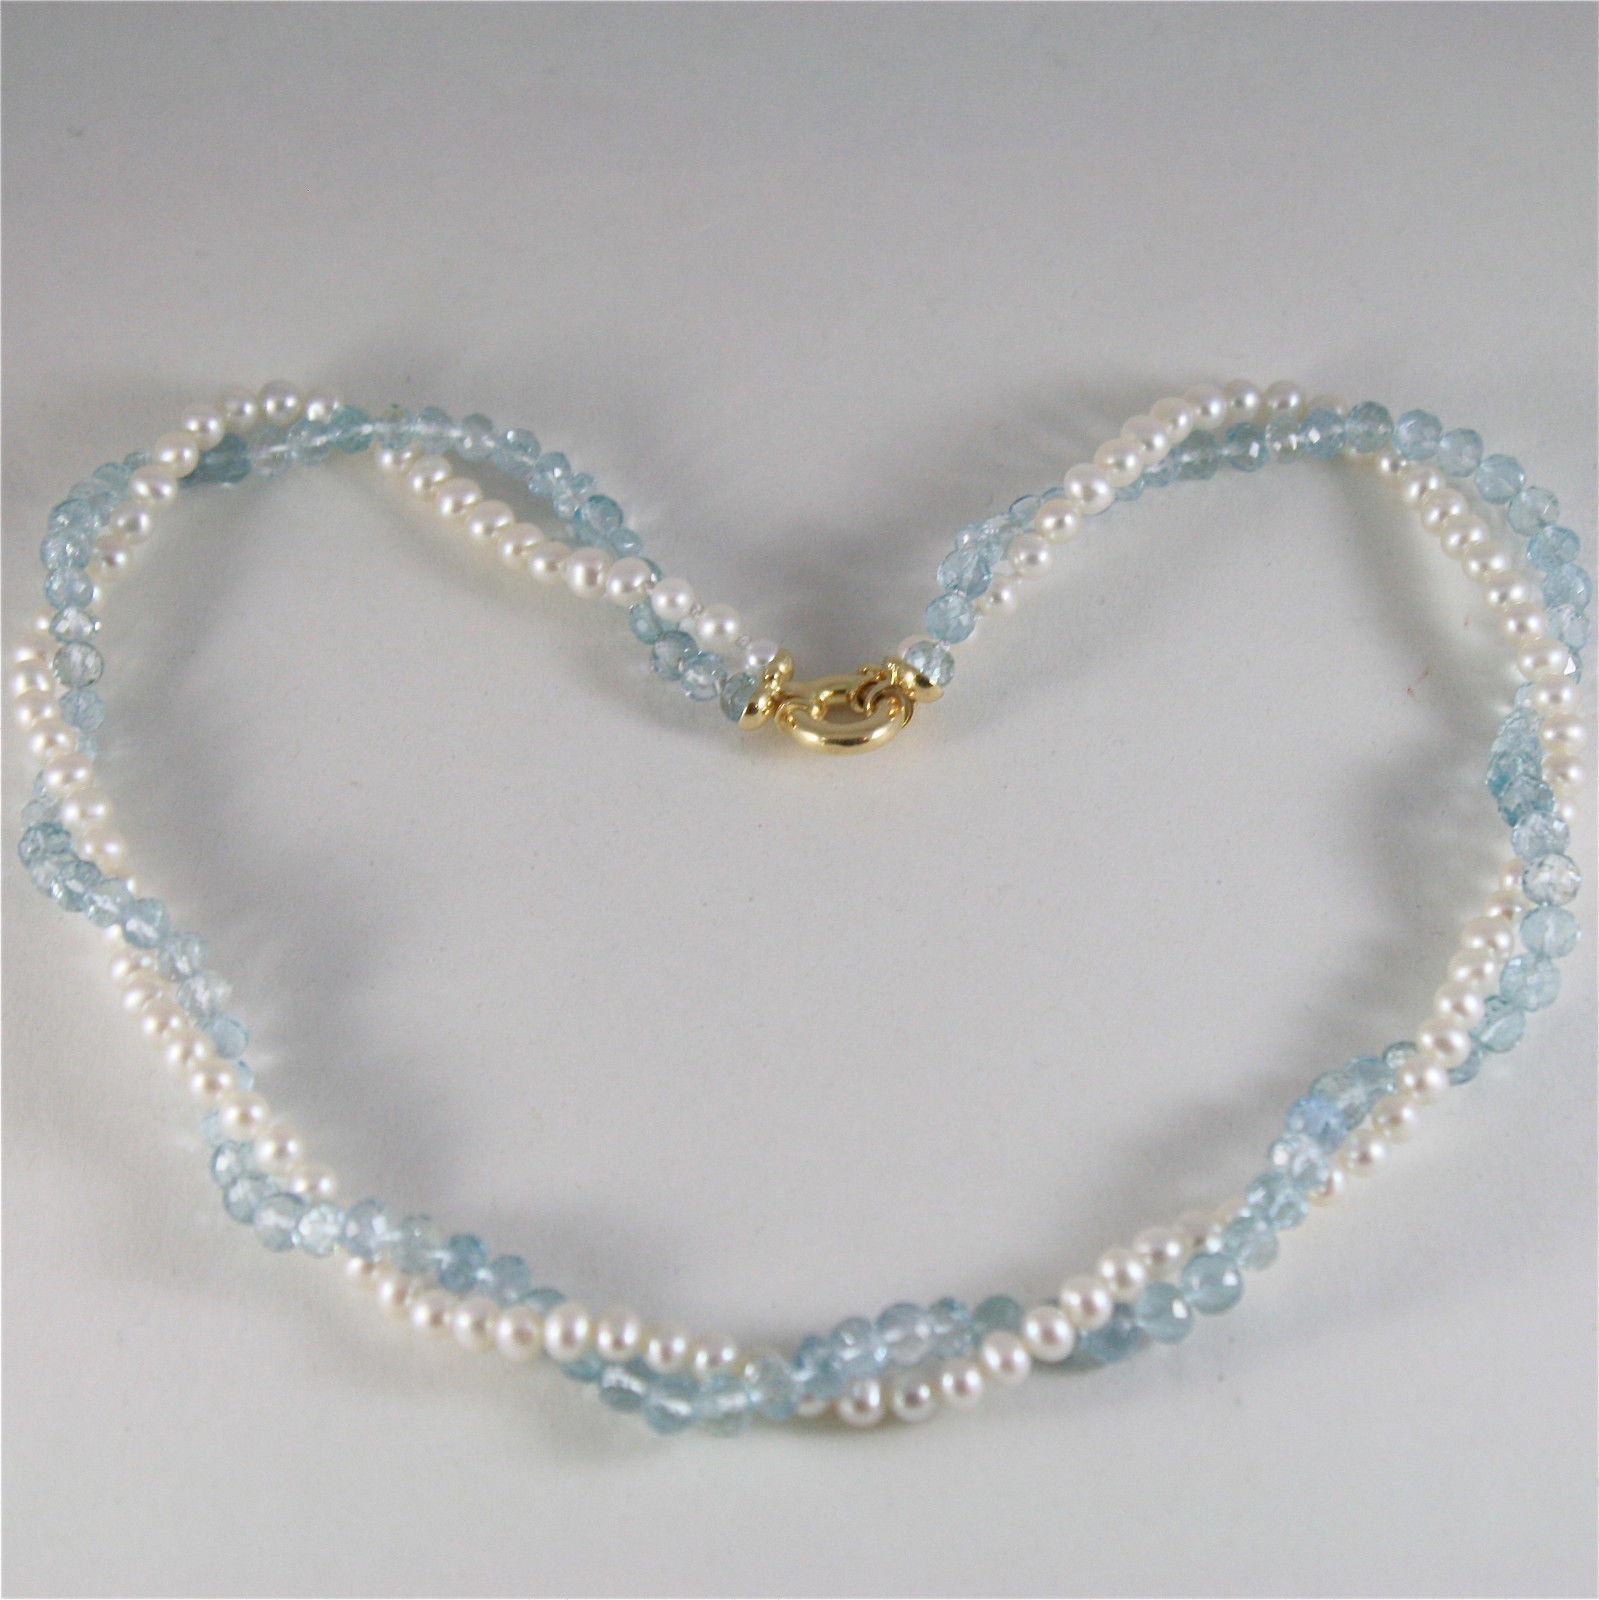 SOLID 18K YELLOW GOLD NECKLACE WITH ROUND PEARLS AND AQUAMARINE MADE IN ITALY